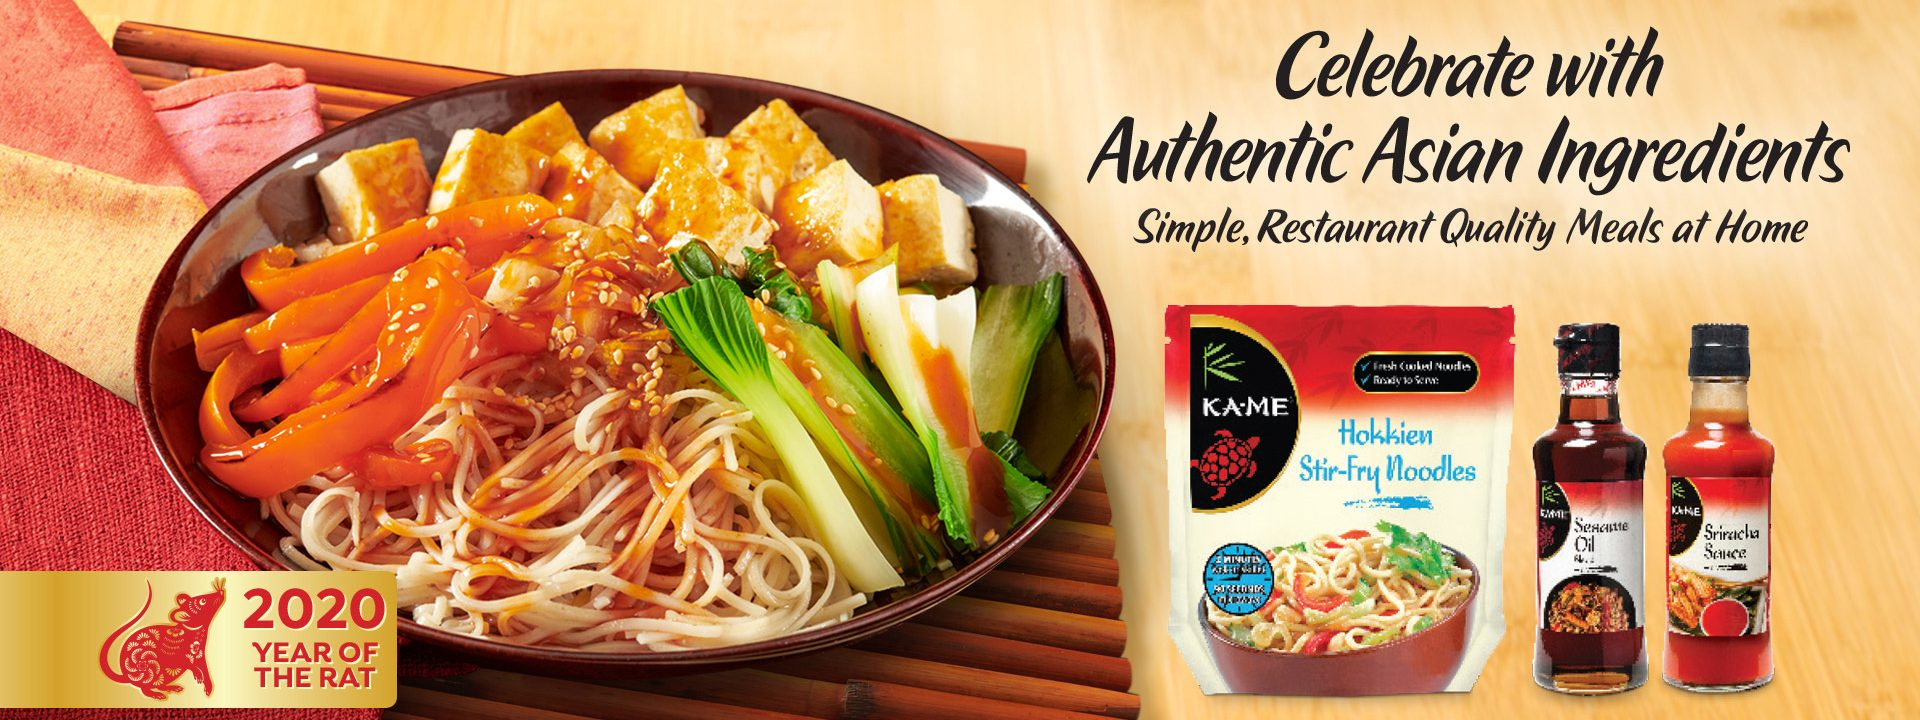 KAME Authentic Asian Ingredients